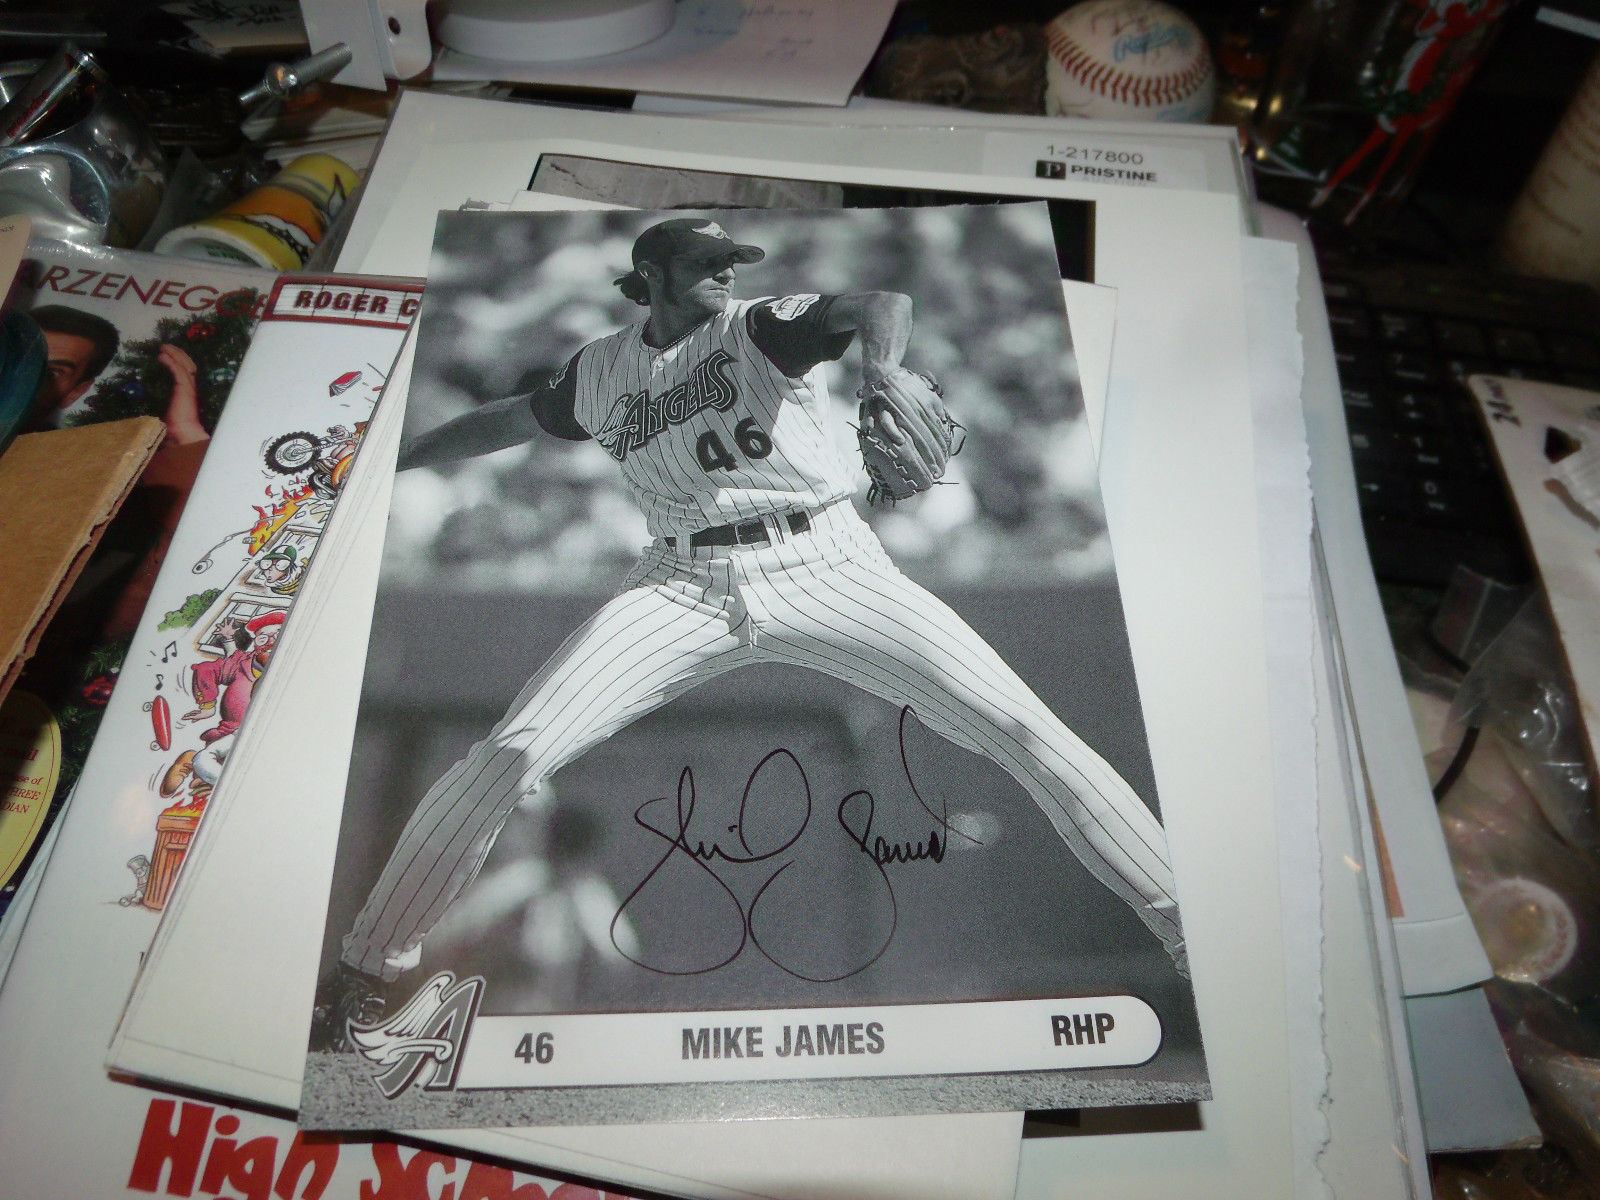 MIKE JAMES HAND SIGNED 5X7 PHOTO CARD ANGELS BASEBALL